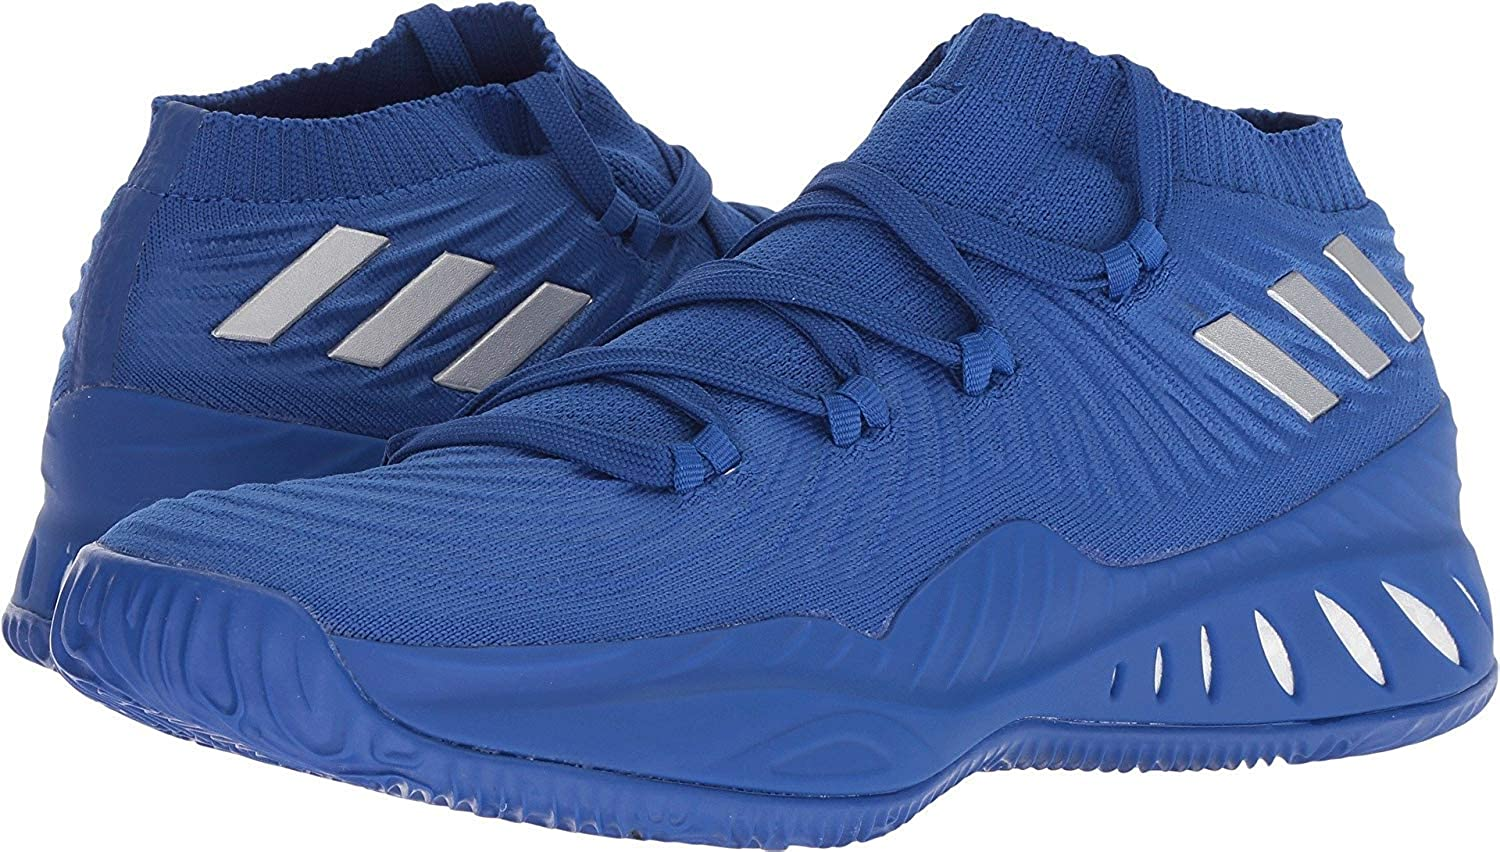 bluee-Silver Metallic Adidas Crazy Explosive 2017 Primeknit Low shoes Men's Basketball